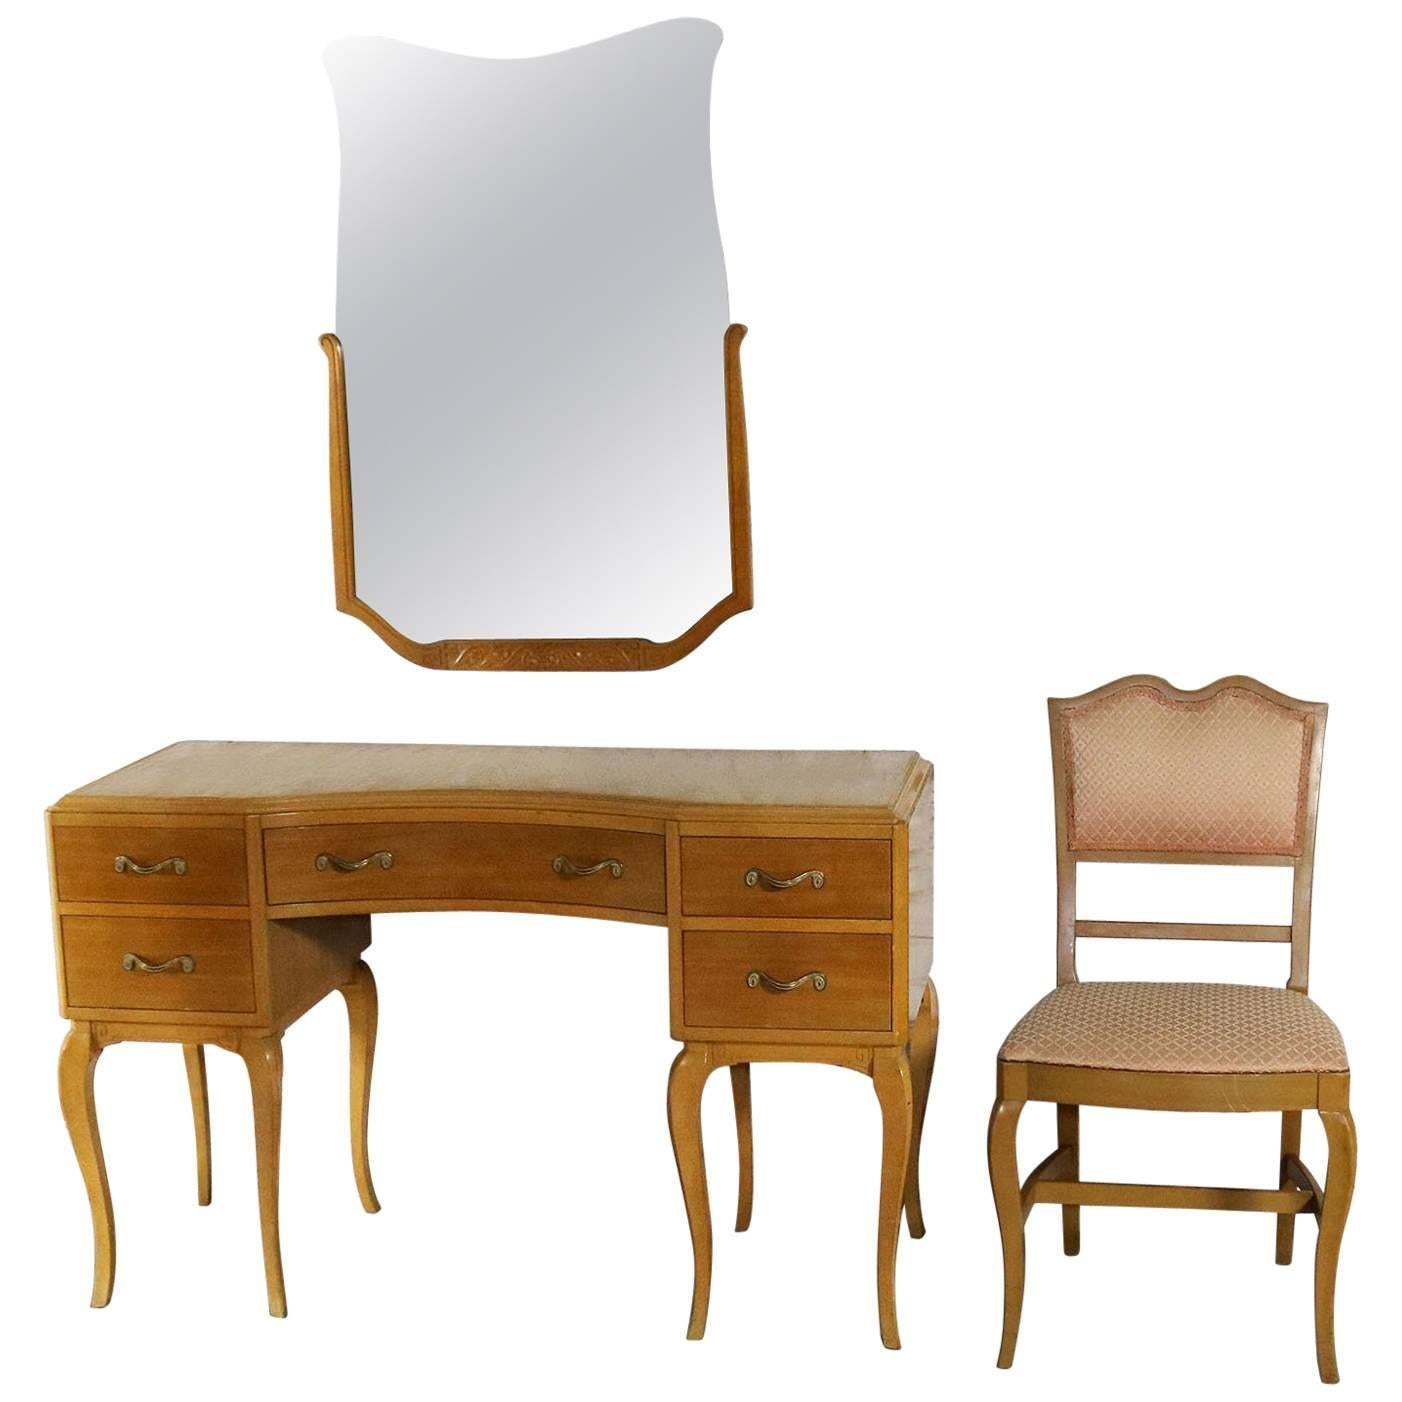 Art Deco Style Vanity Mirror And Chair By Rway Northern Furniture Co.  Sheboygan For Sale